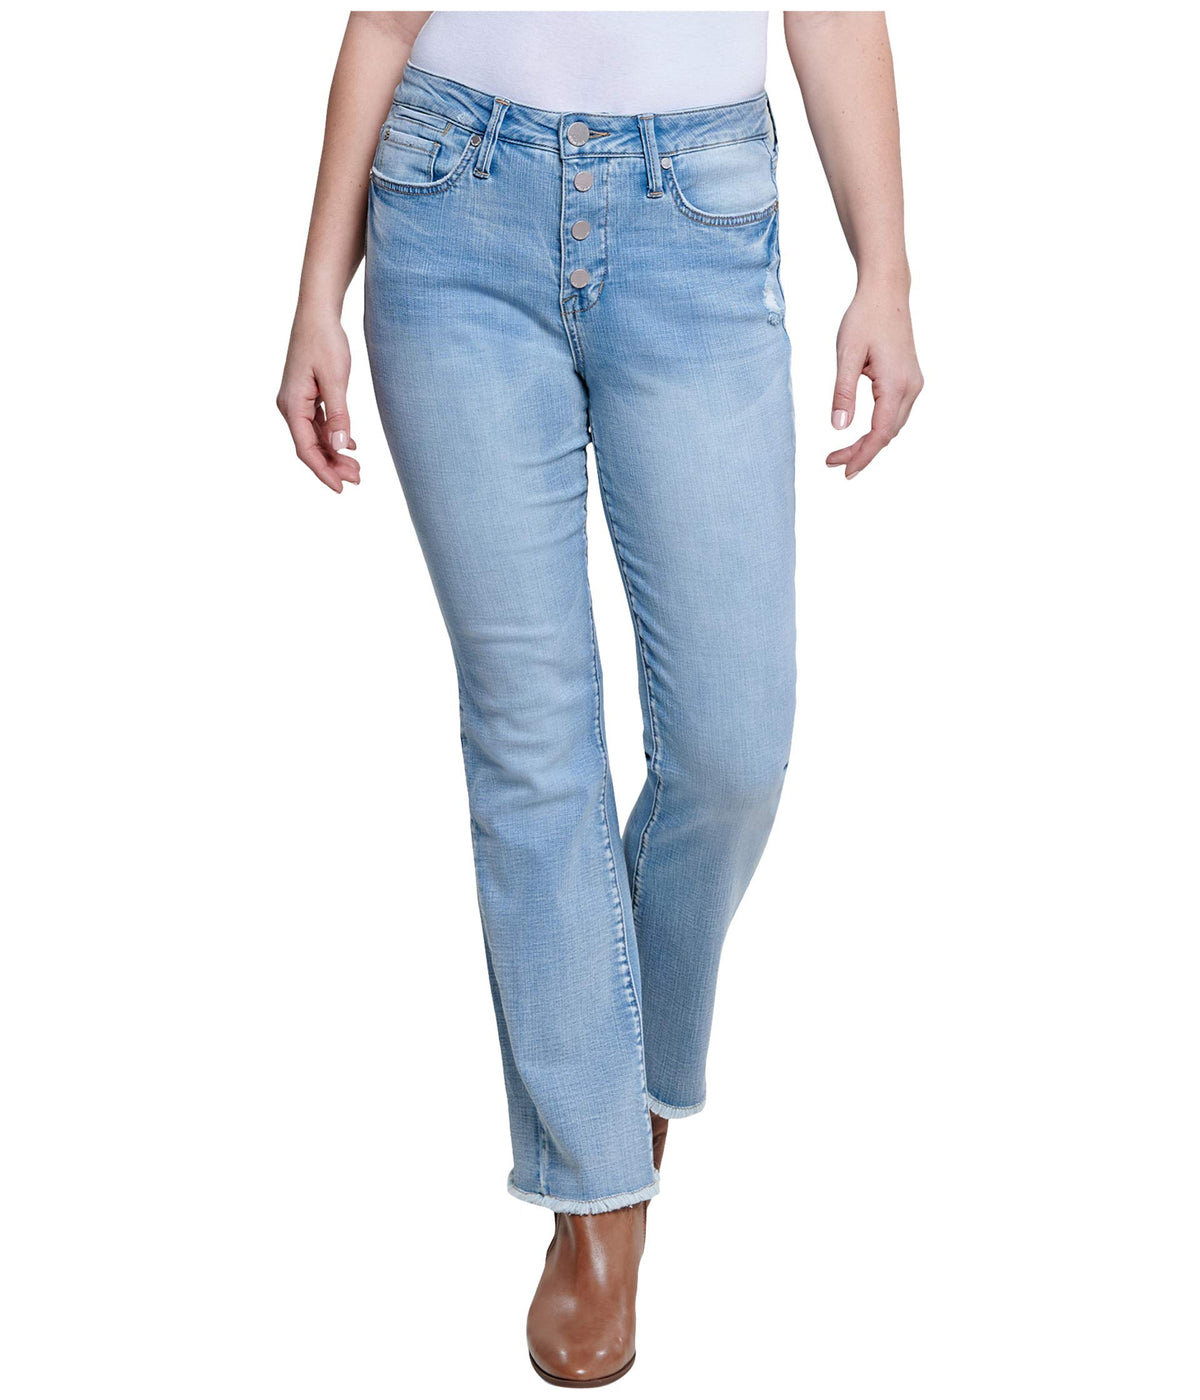 High-Rise Flip-Flop Flare Jeans in Blue Skies